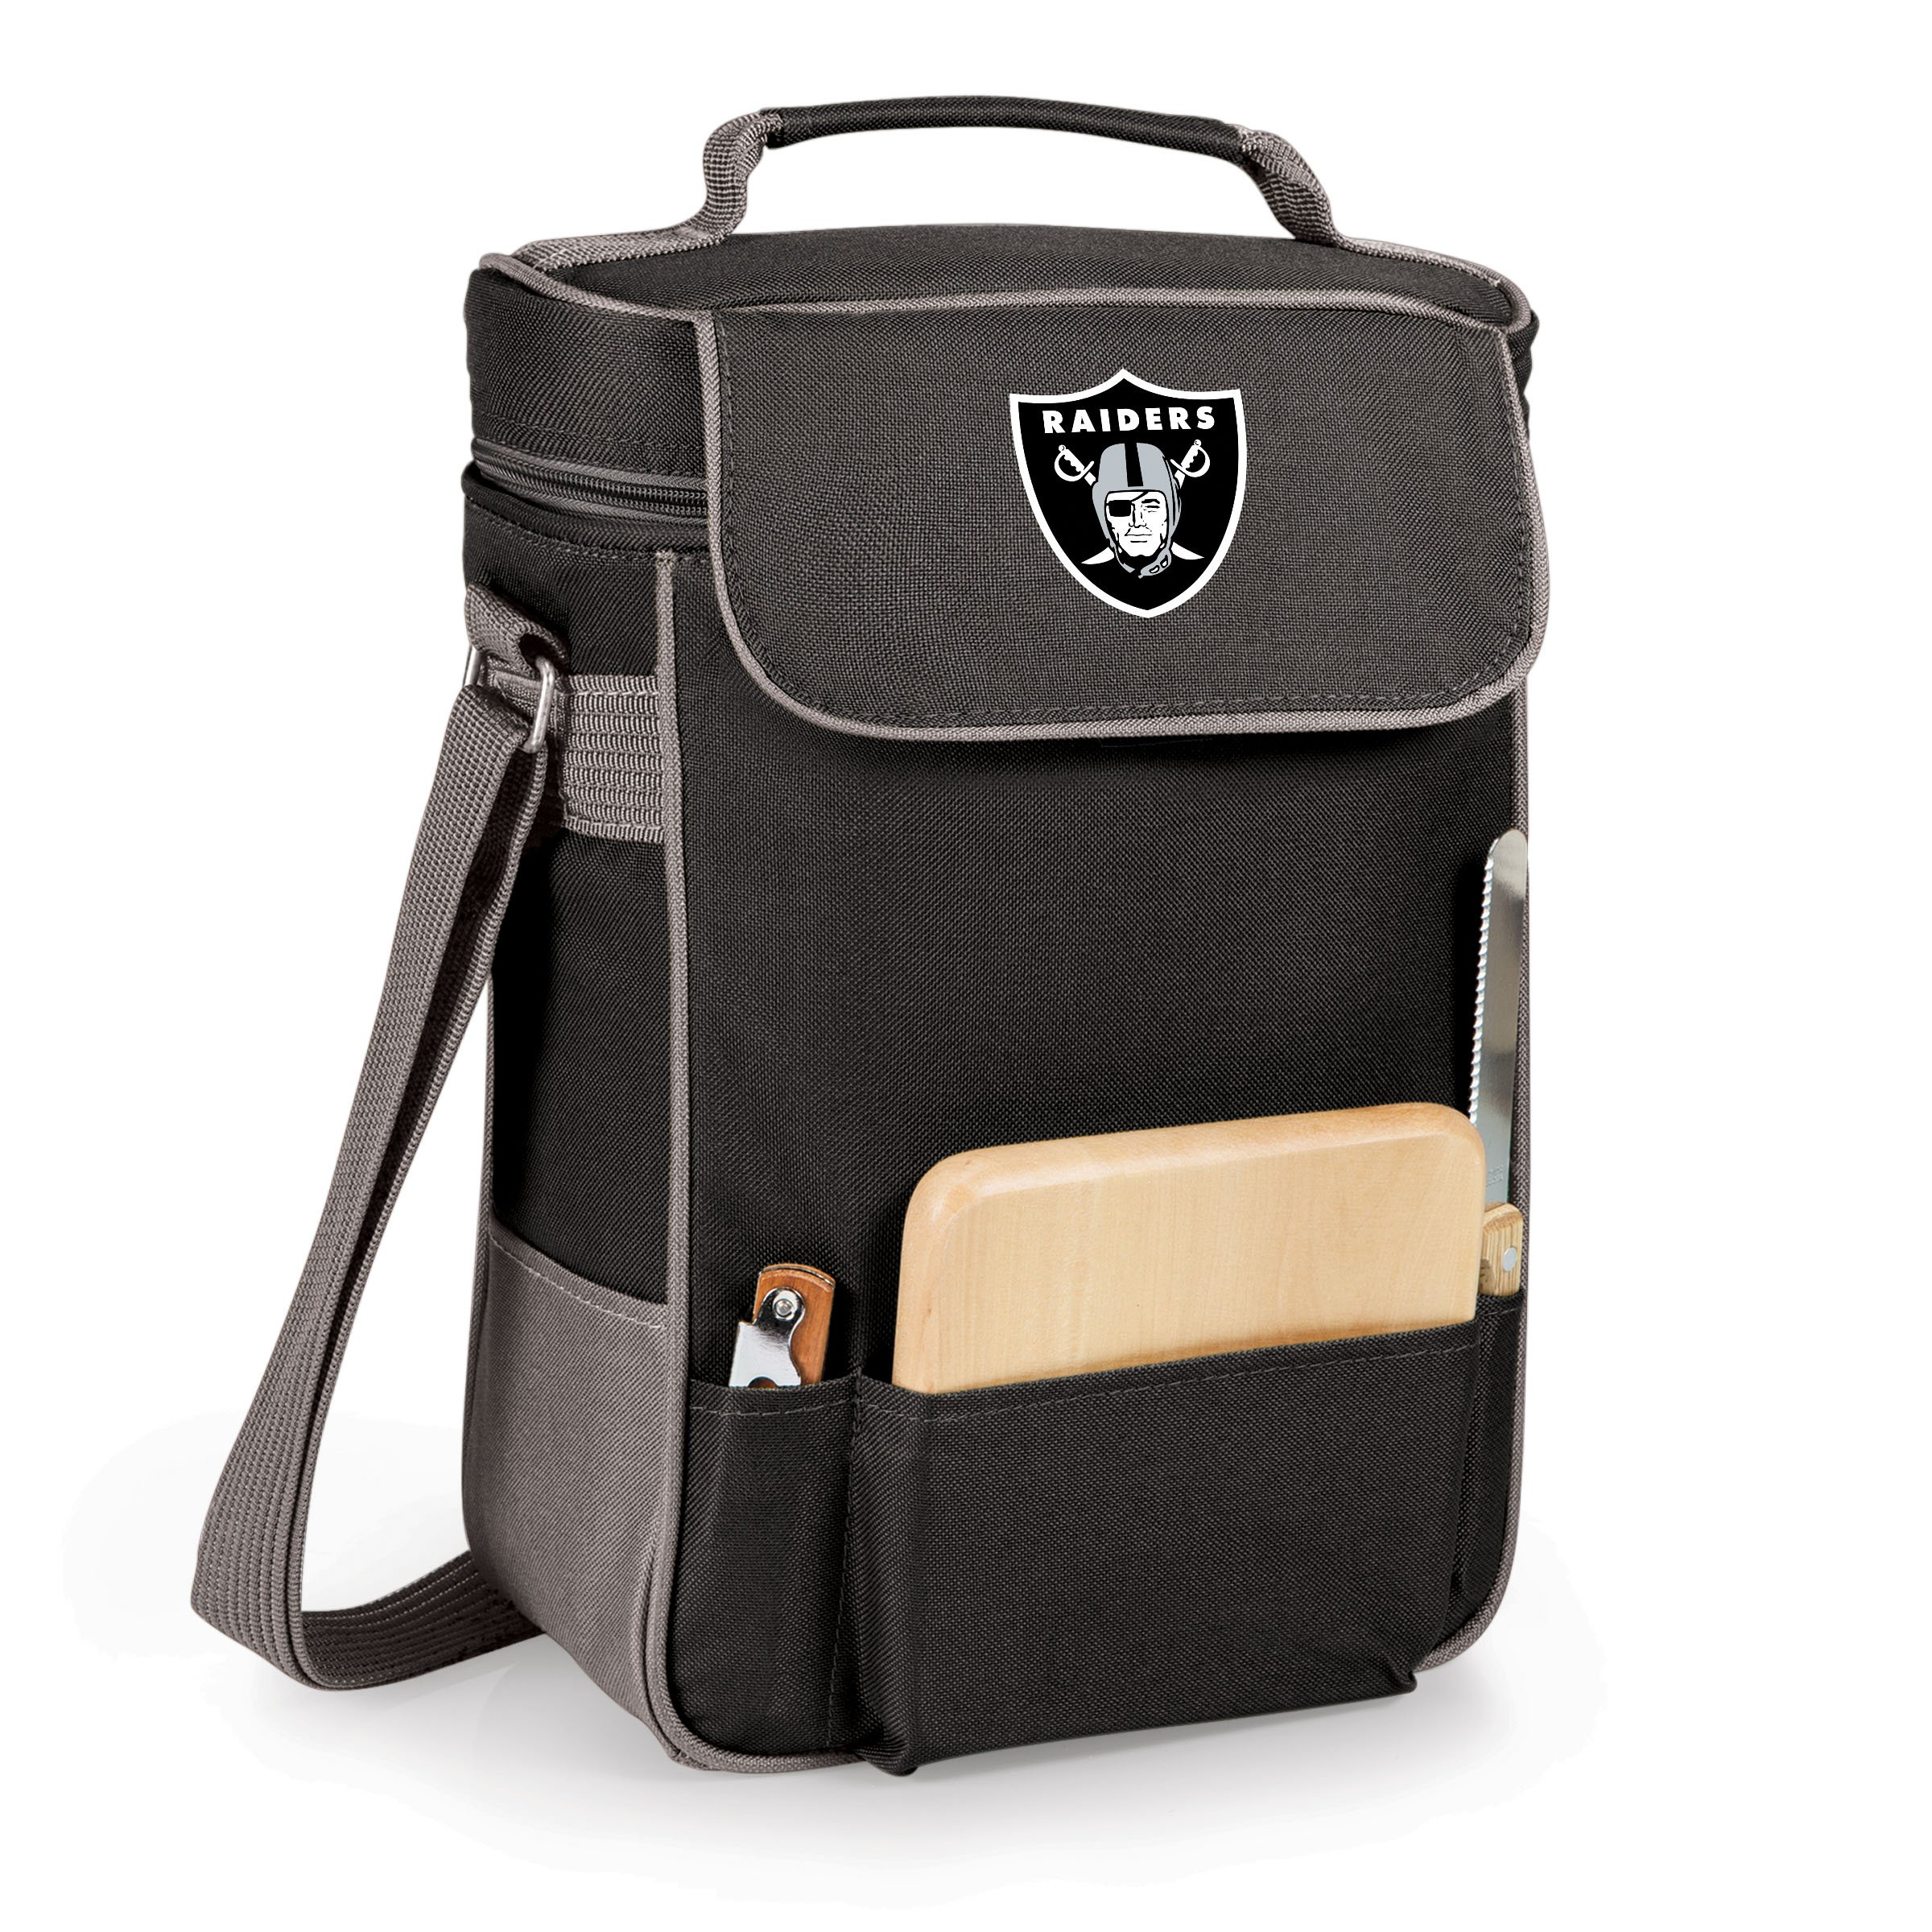 NFL Oakland Raiders Duet Insulated 2-Bottle Wine and Cheese Tote by PICNIC TIME (Image #1)